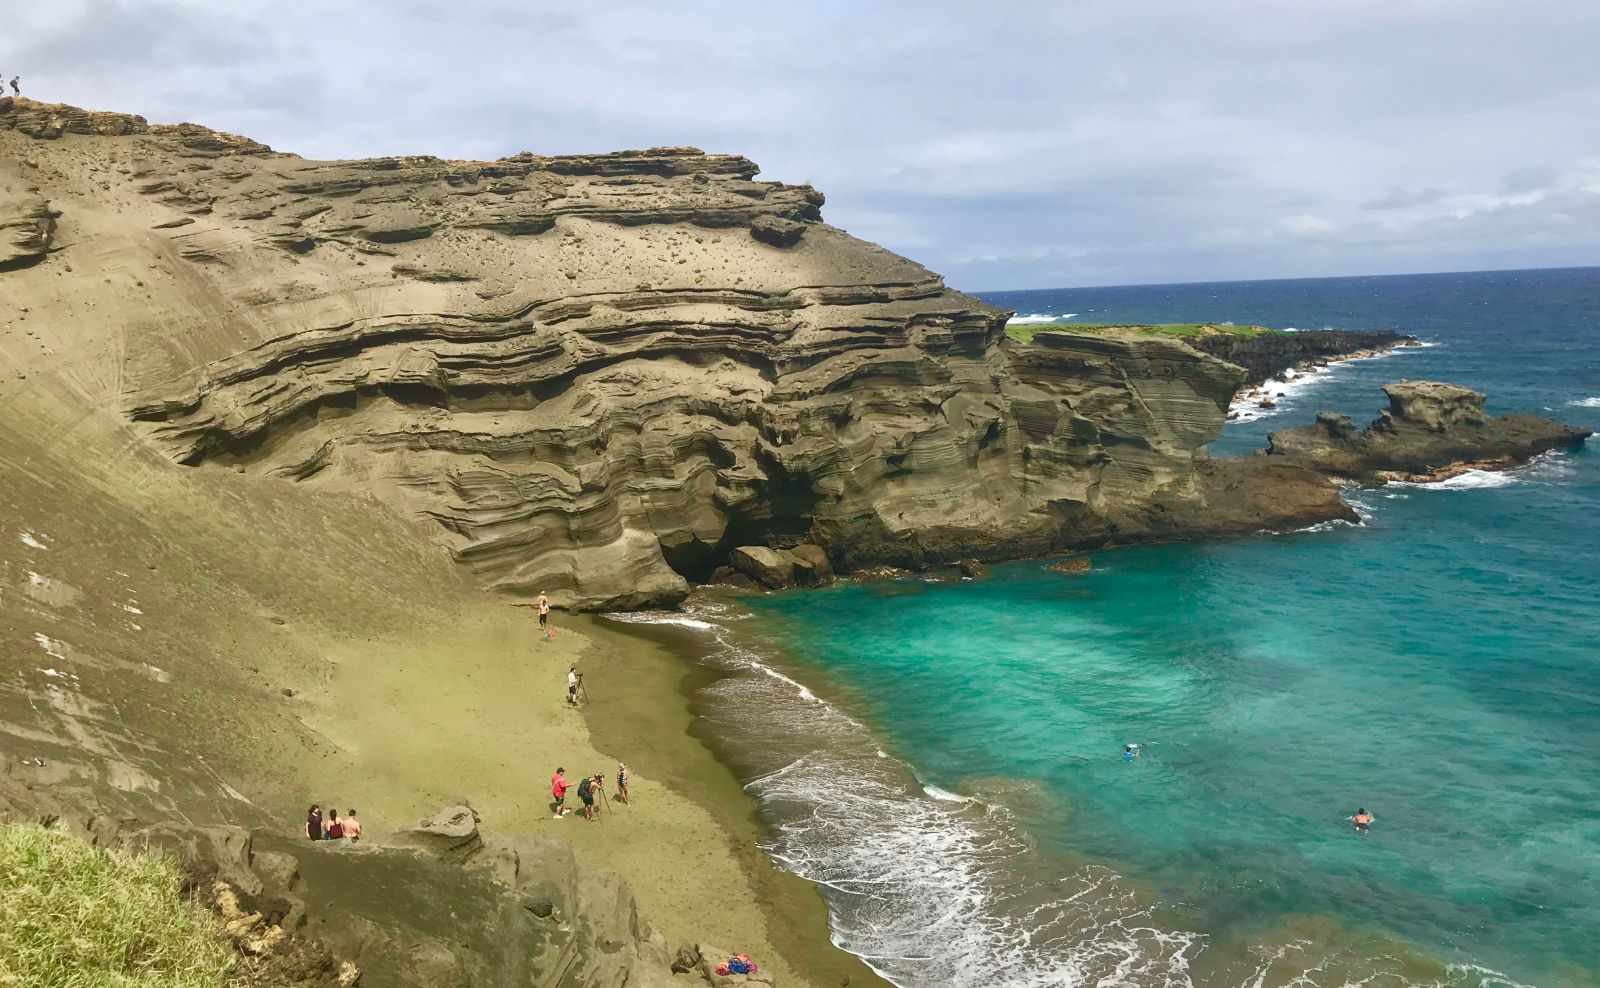 Green Sand Beach Gets Its Unique Earance From Fragmented Olivine Crystals The Only Gem That Naturally Exists On Geologically Young Island Of Hawaii